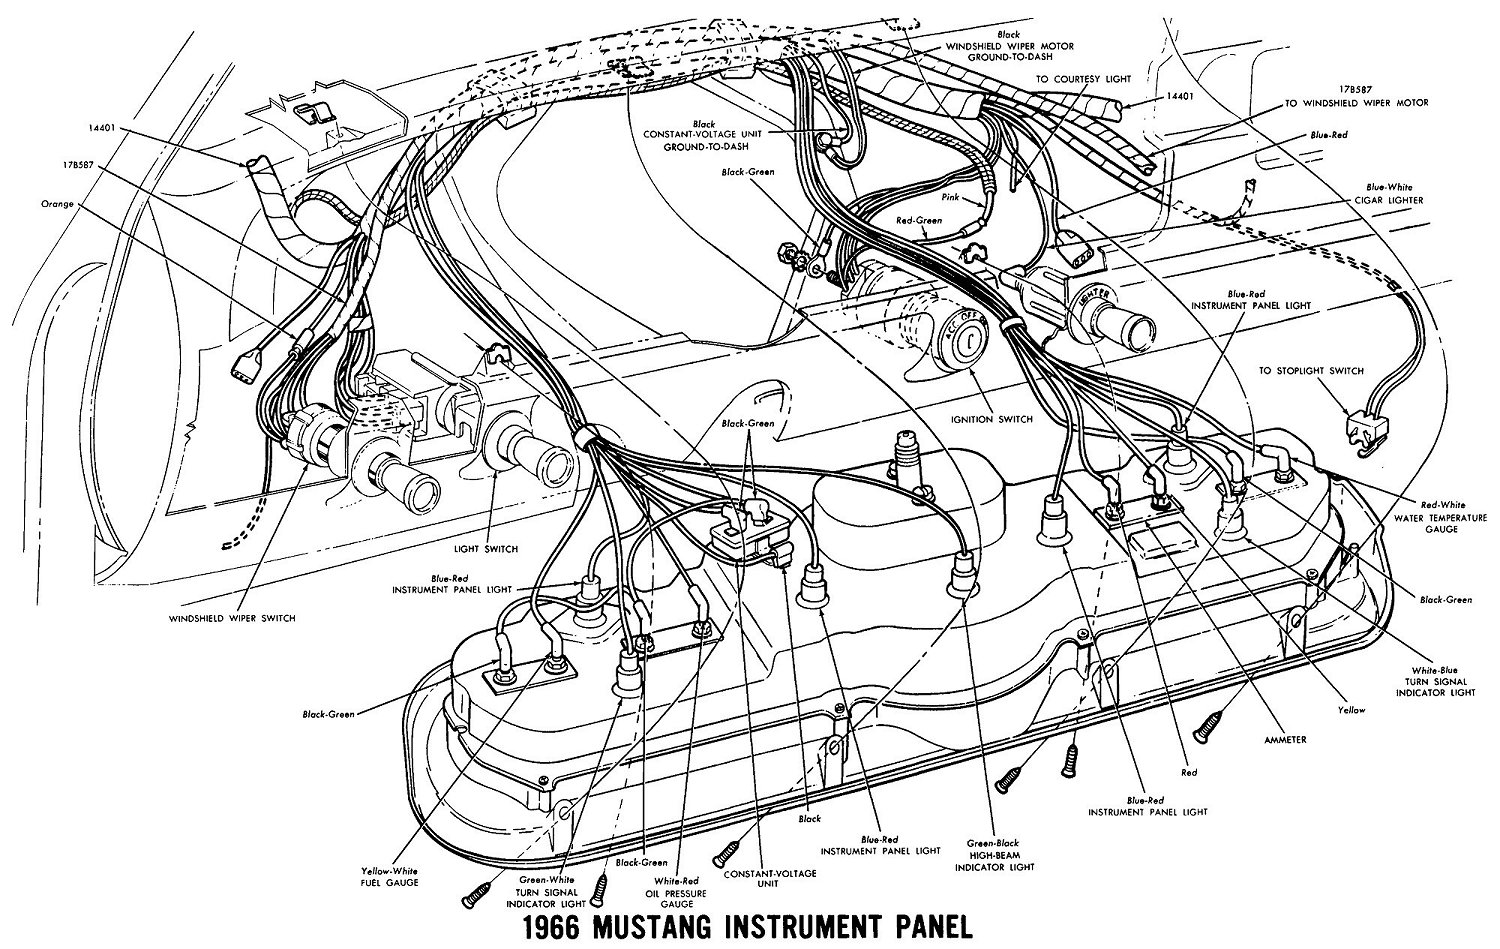 66instr vintage mustang wiring diagrams 1970 mustang wiring diagram download at n-0.co